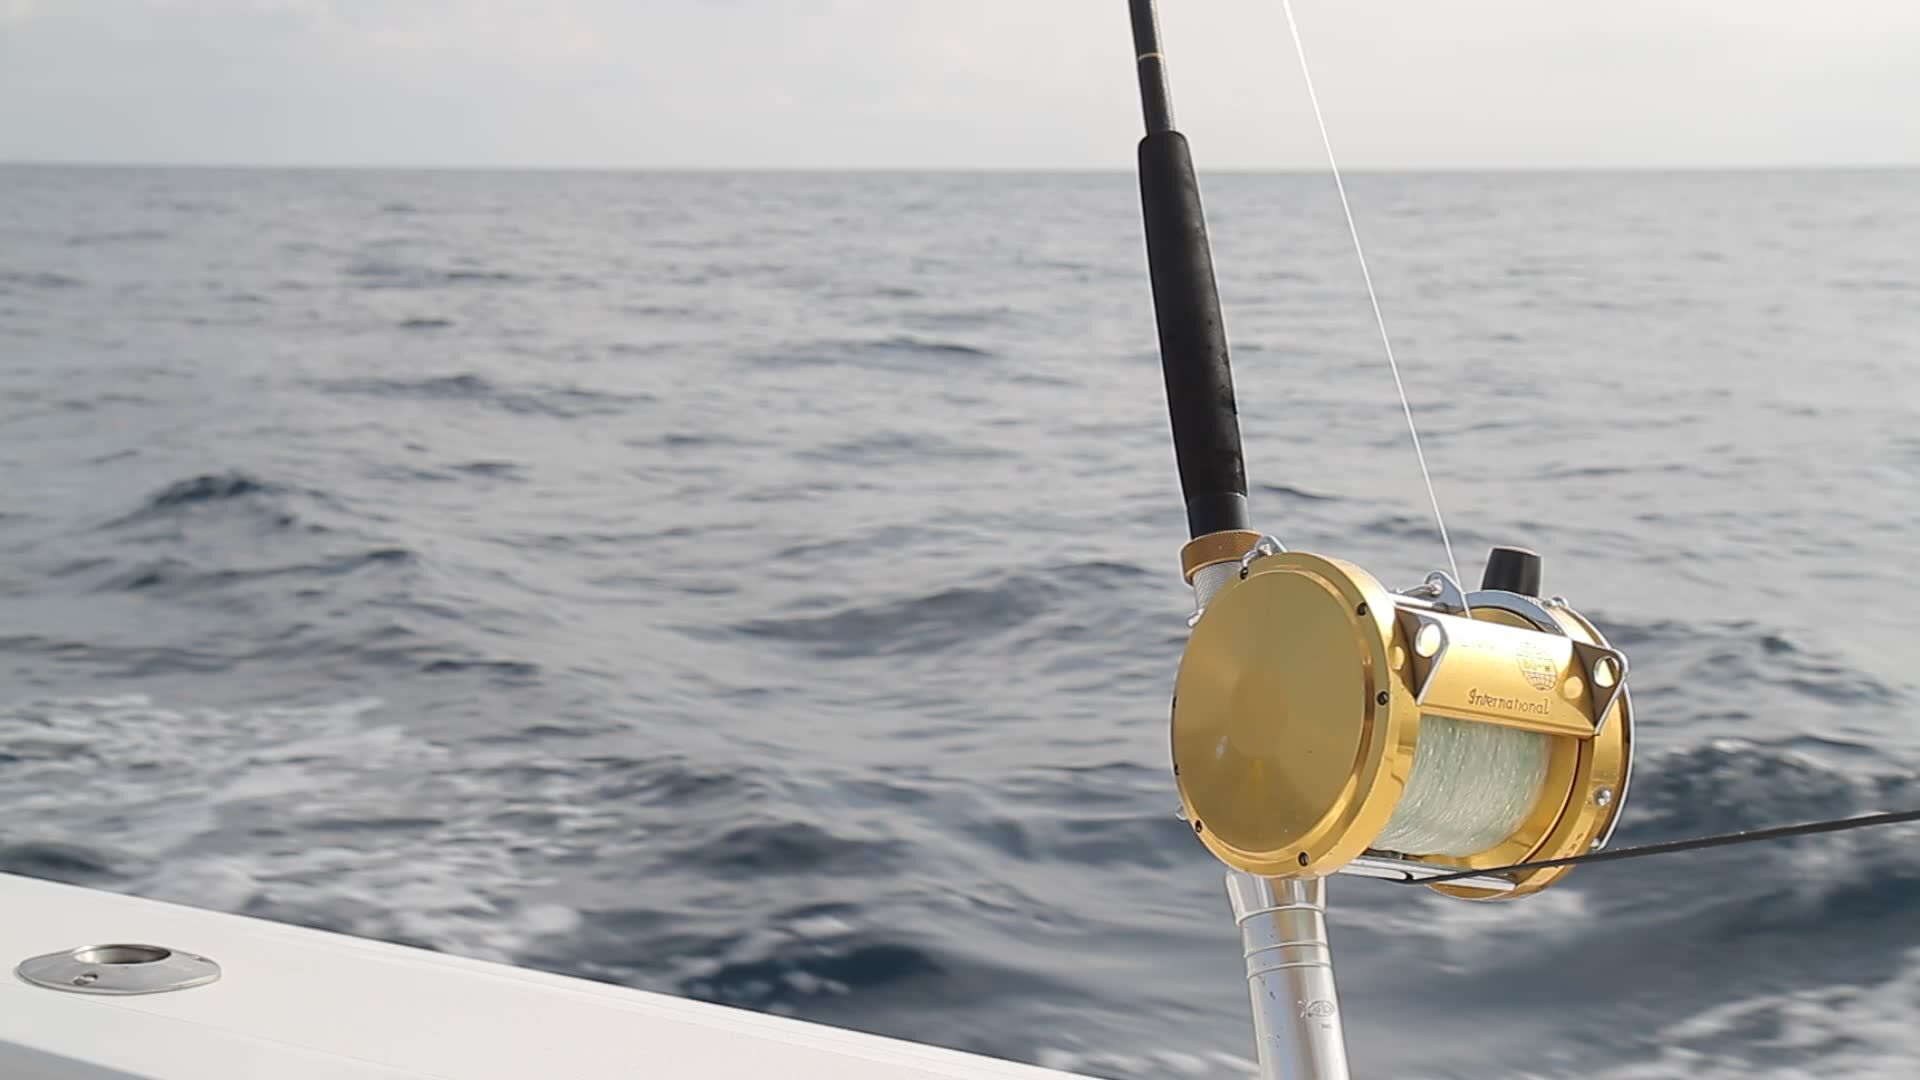 Sport fishing trawling for marlin and tuna in cabo san lucas